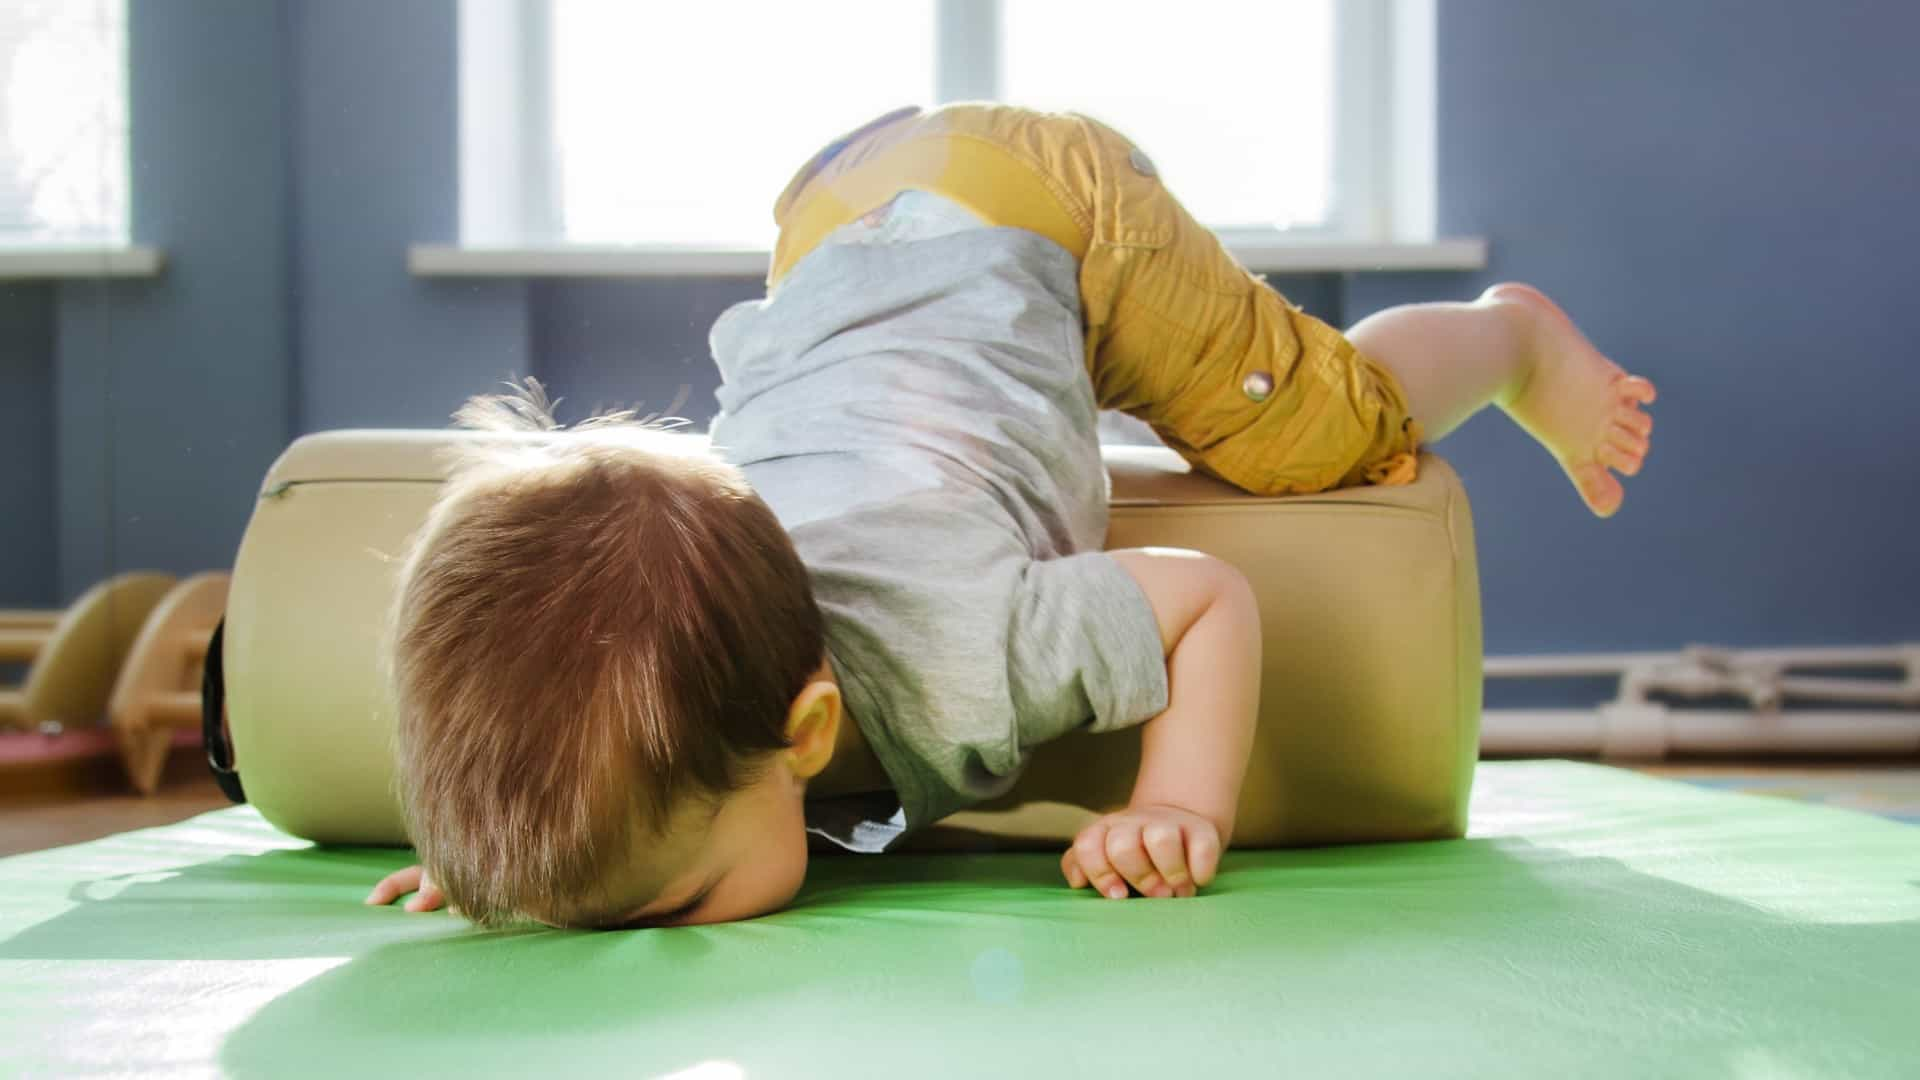 Falling ASX share price represented by toddler nosediving over cushion onto floor